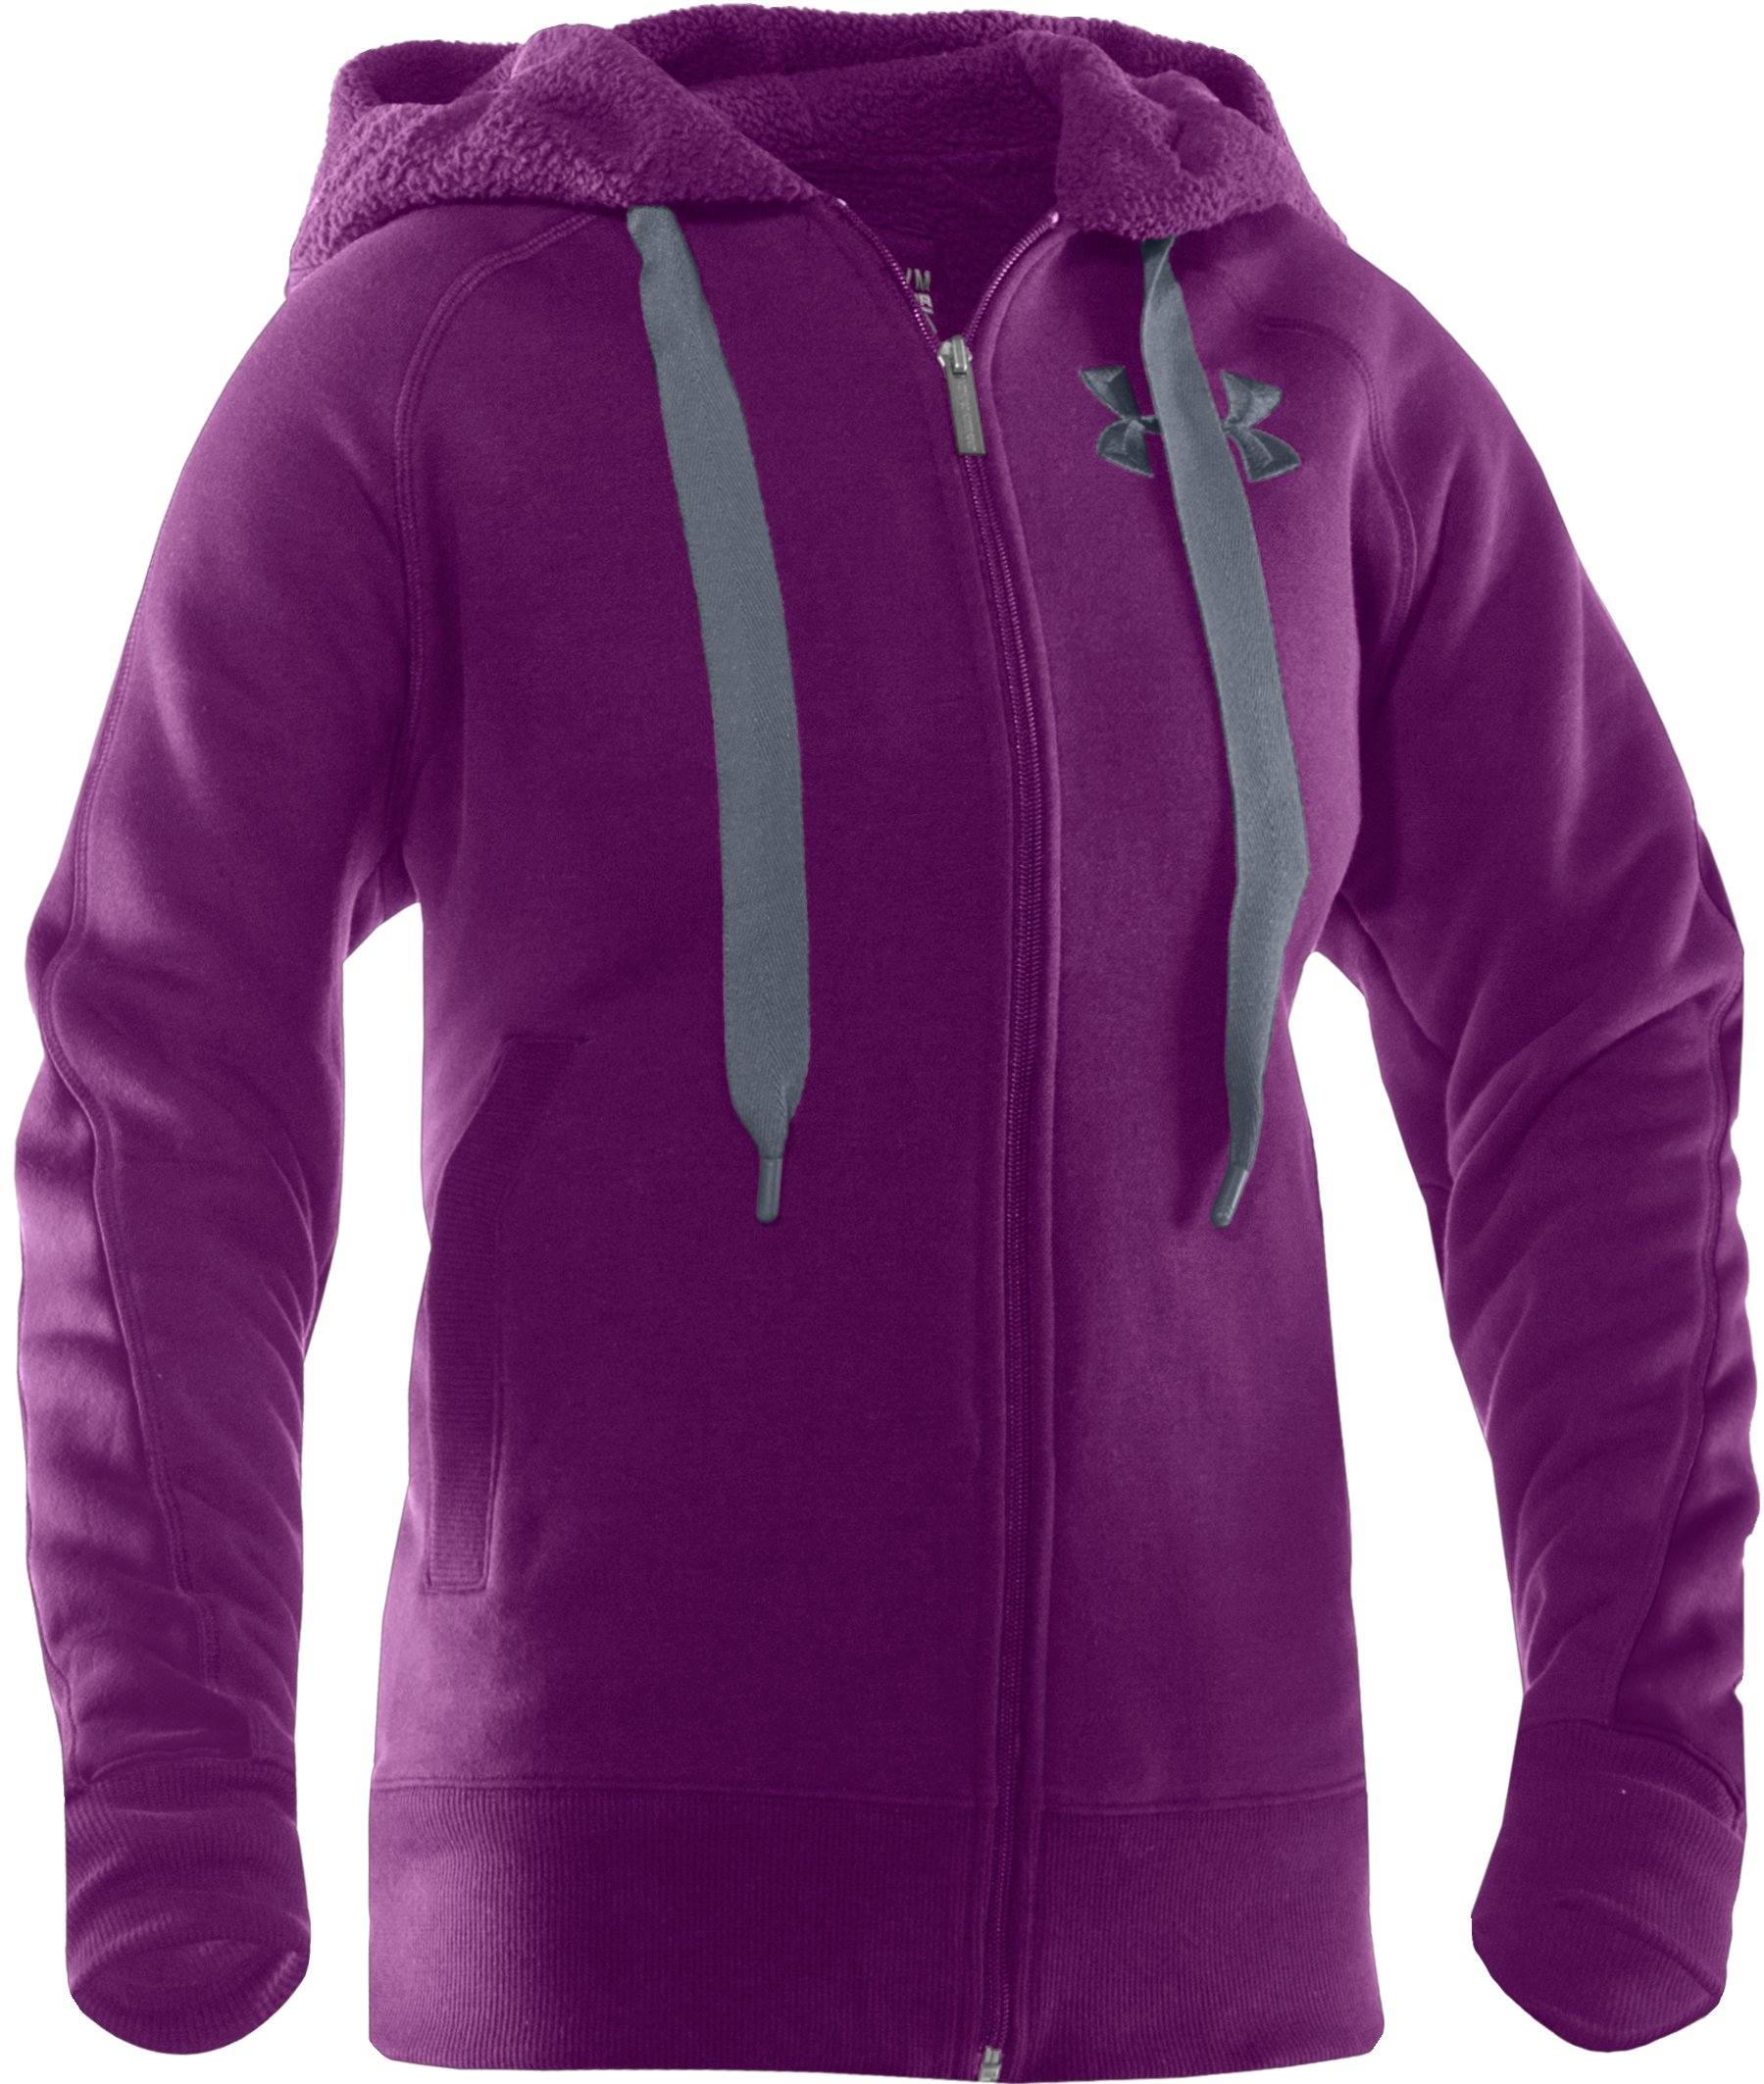 Women's Charged Cotton® Storm Sherpa Full Zip Hoodie, Cassis